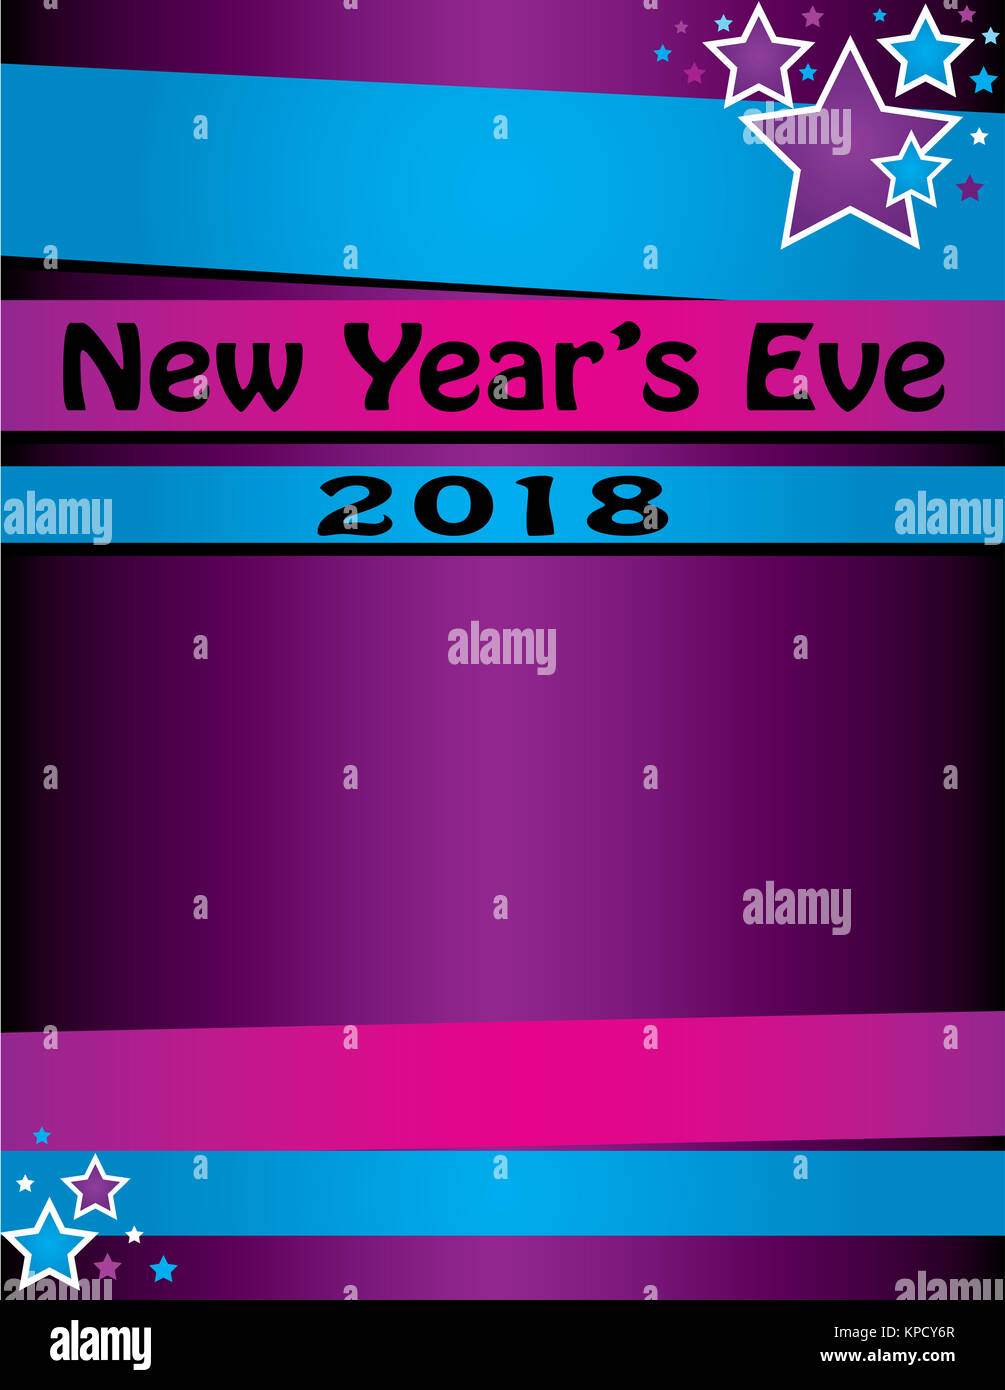 New Years Eve Party For 2018 Poster Or Invitation Template Bright Colors Celebration